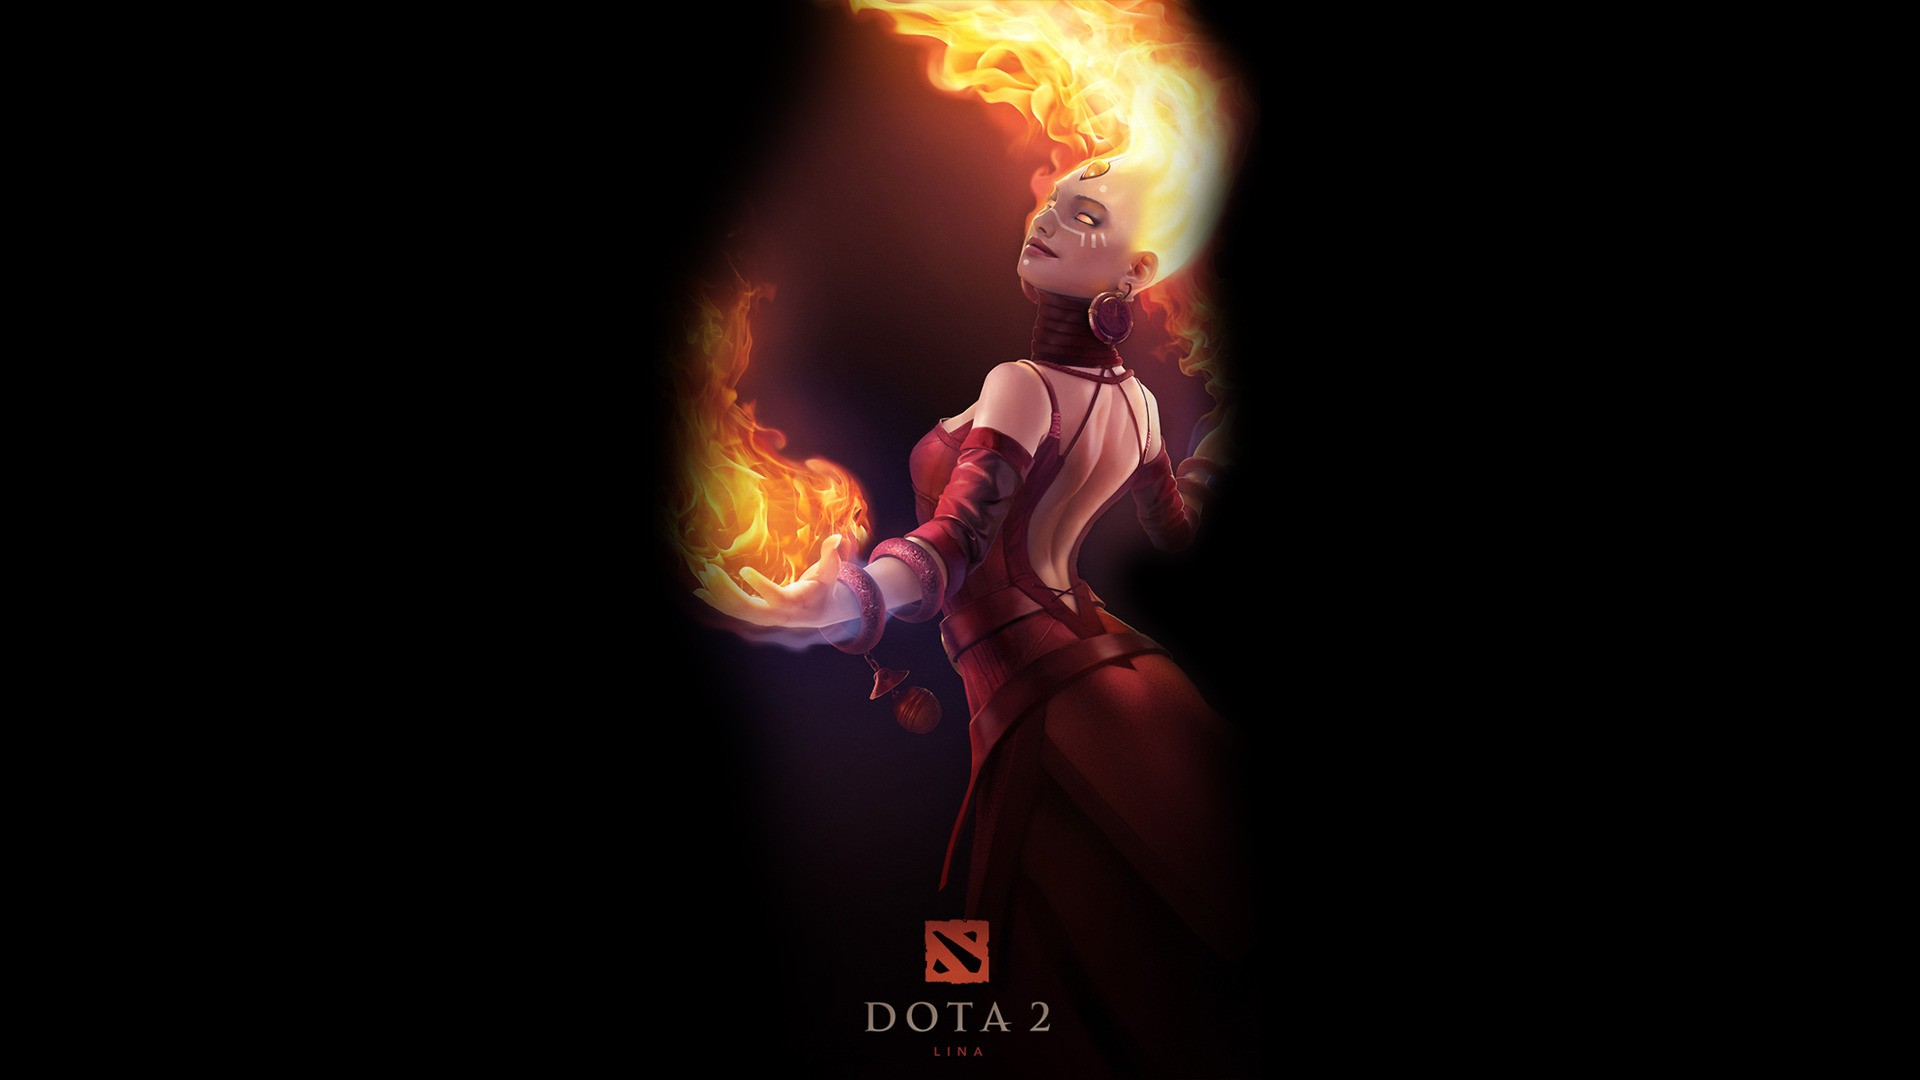 480x854 dota 2 latest android one hd 4k wallpapers